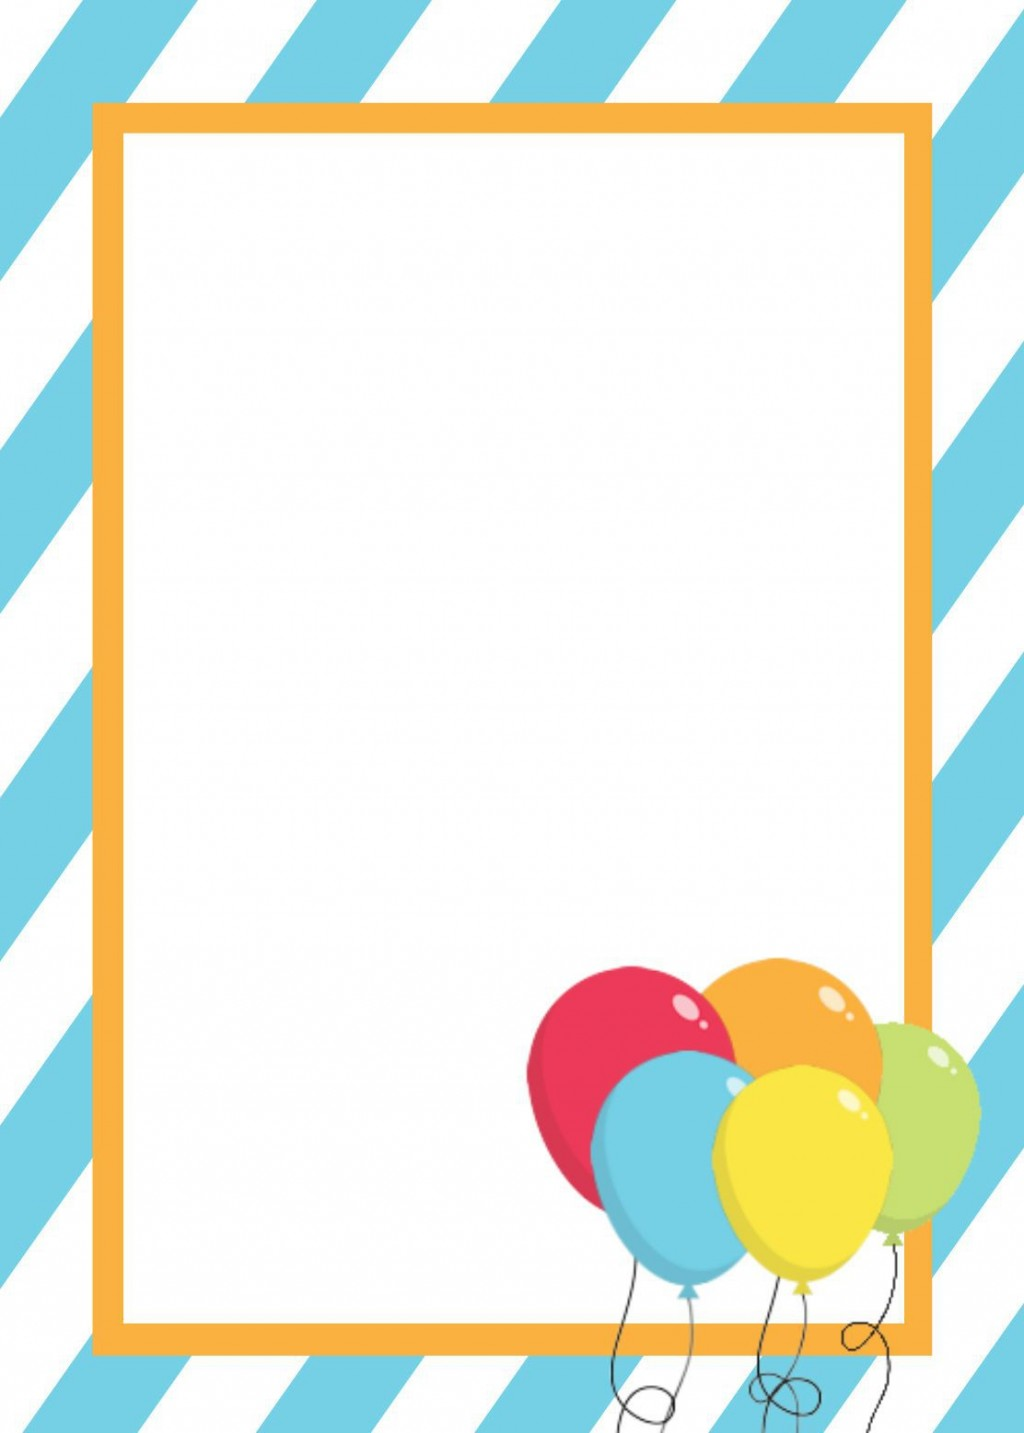 002 Awful Birthday Invitation Card Word Format Example  Template FreeLarge